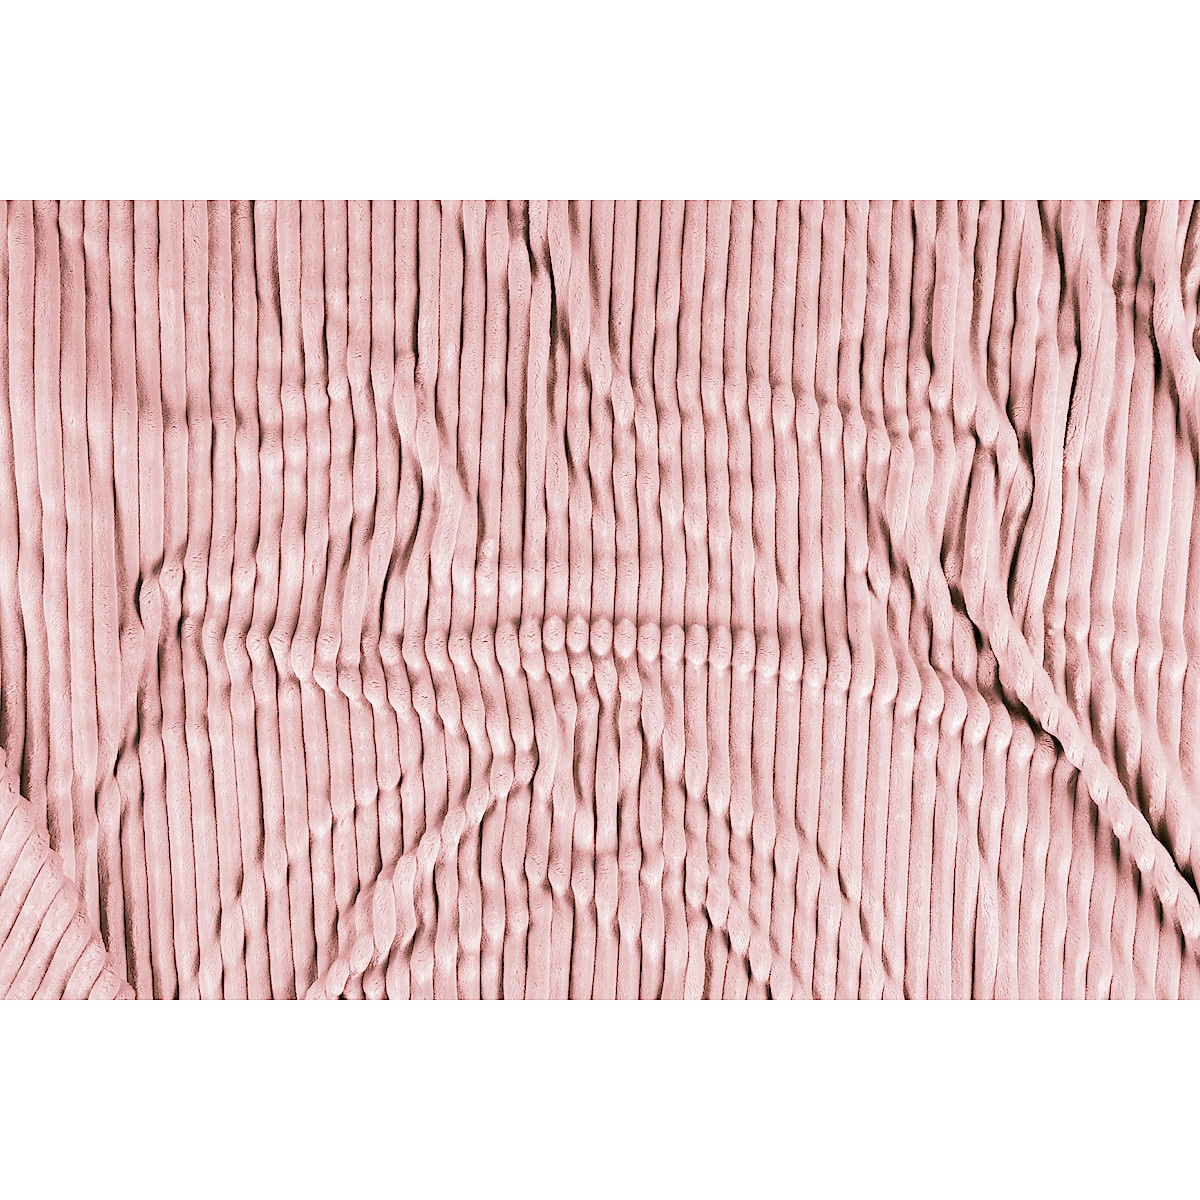 Stripes Fleece Blanket 130x170 cm